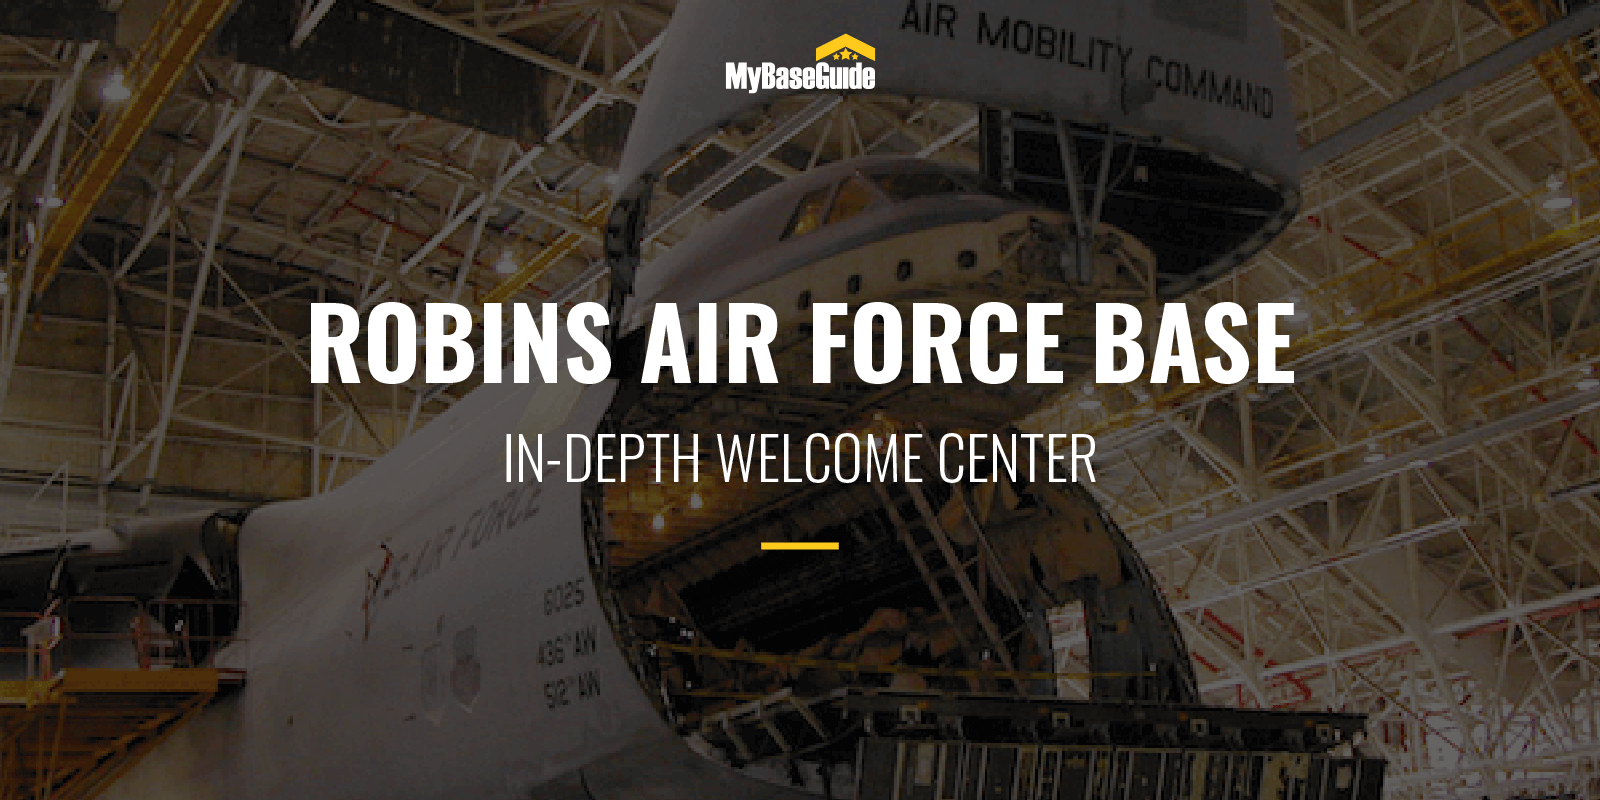 Robins AFB Welcome Center